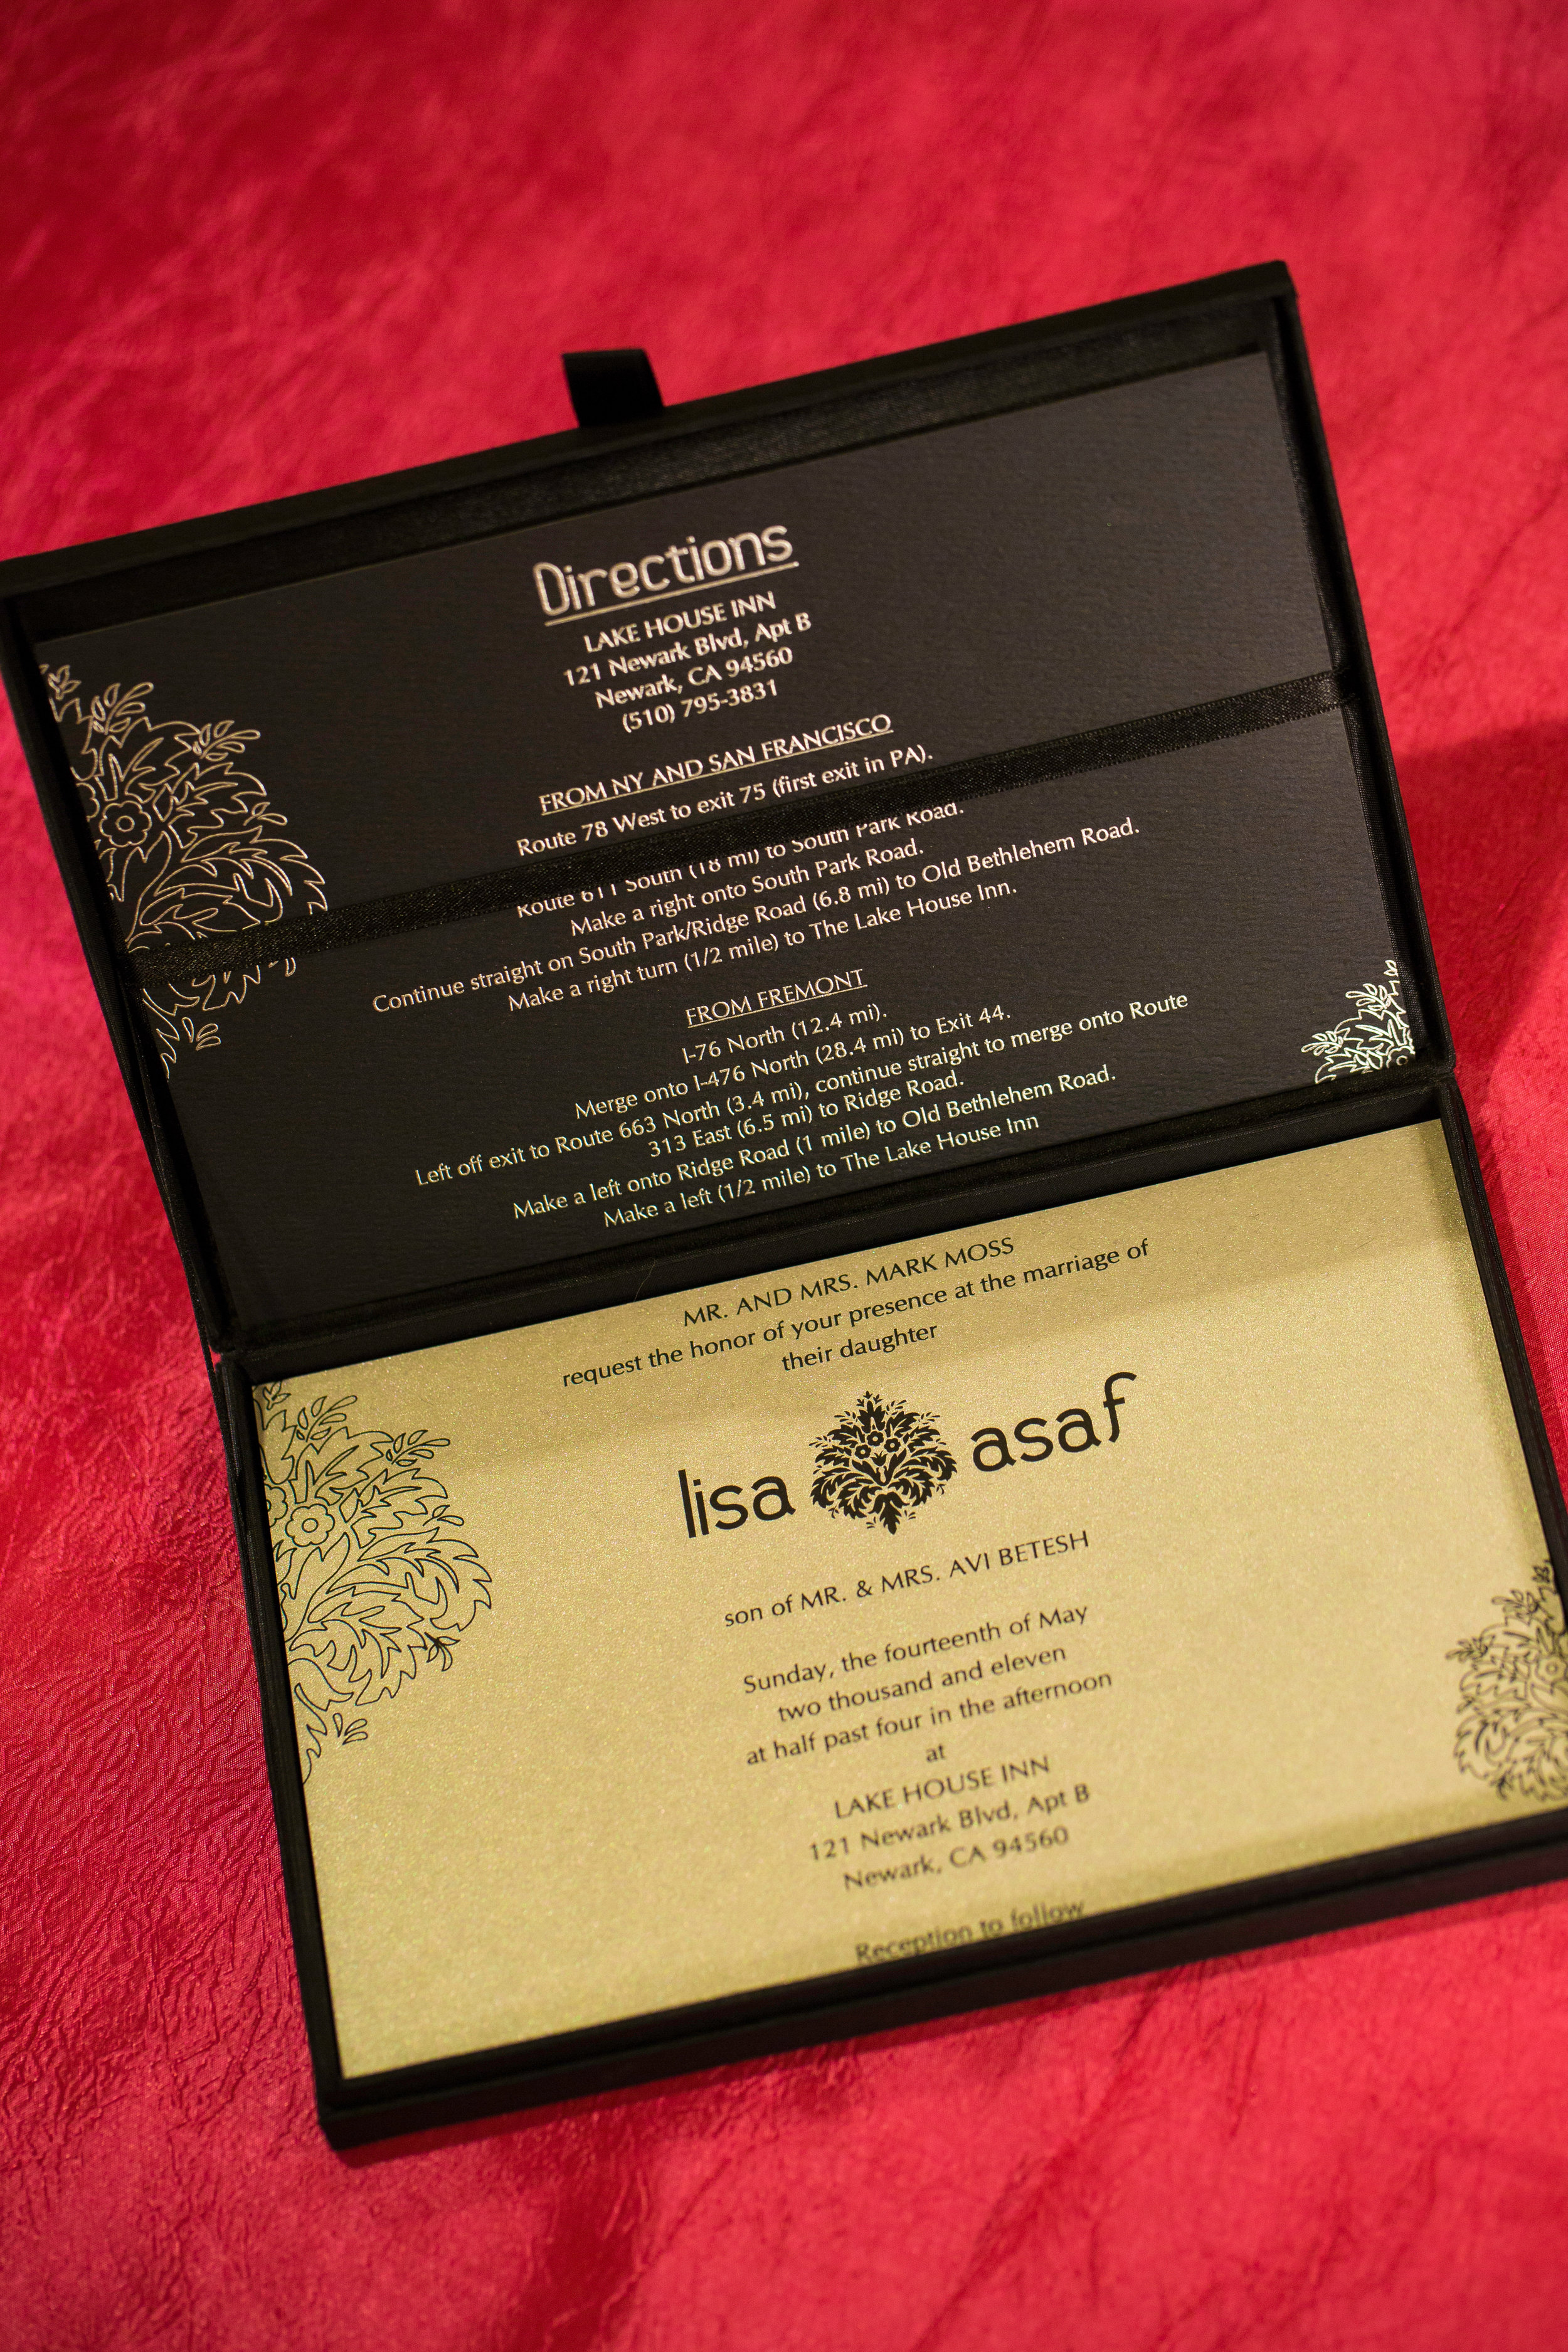 Directions or a Map Card are handy pieces of information for your guests